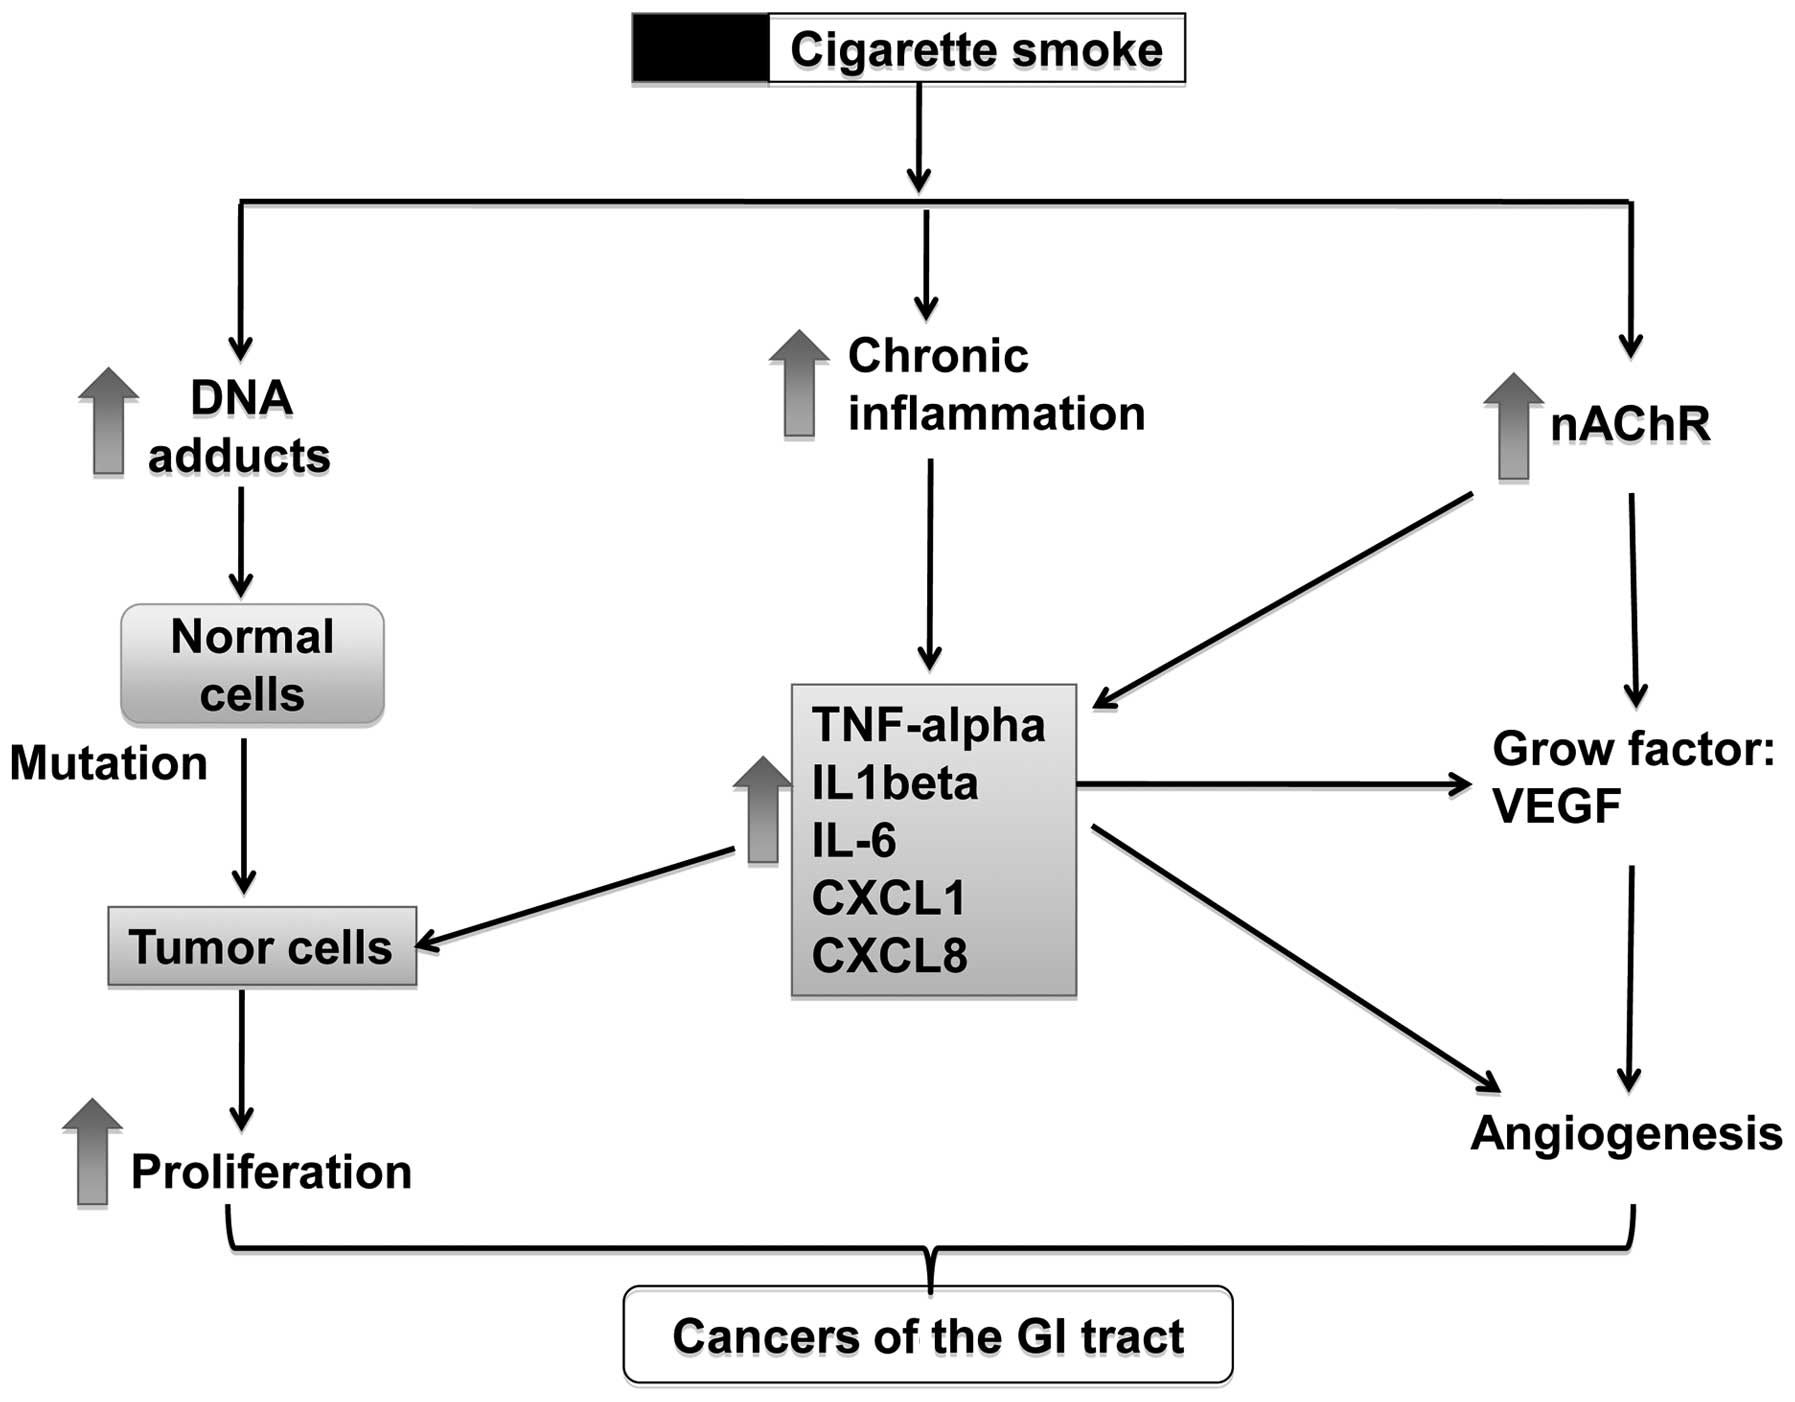 Cigarette smoking and gastrointestinal diseases: The causal